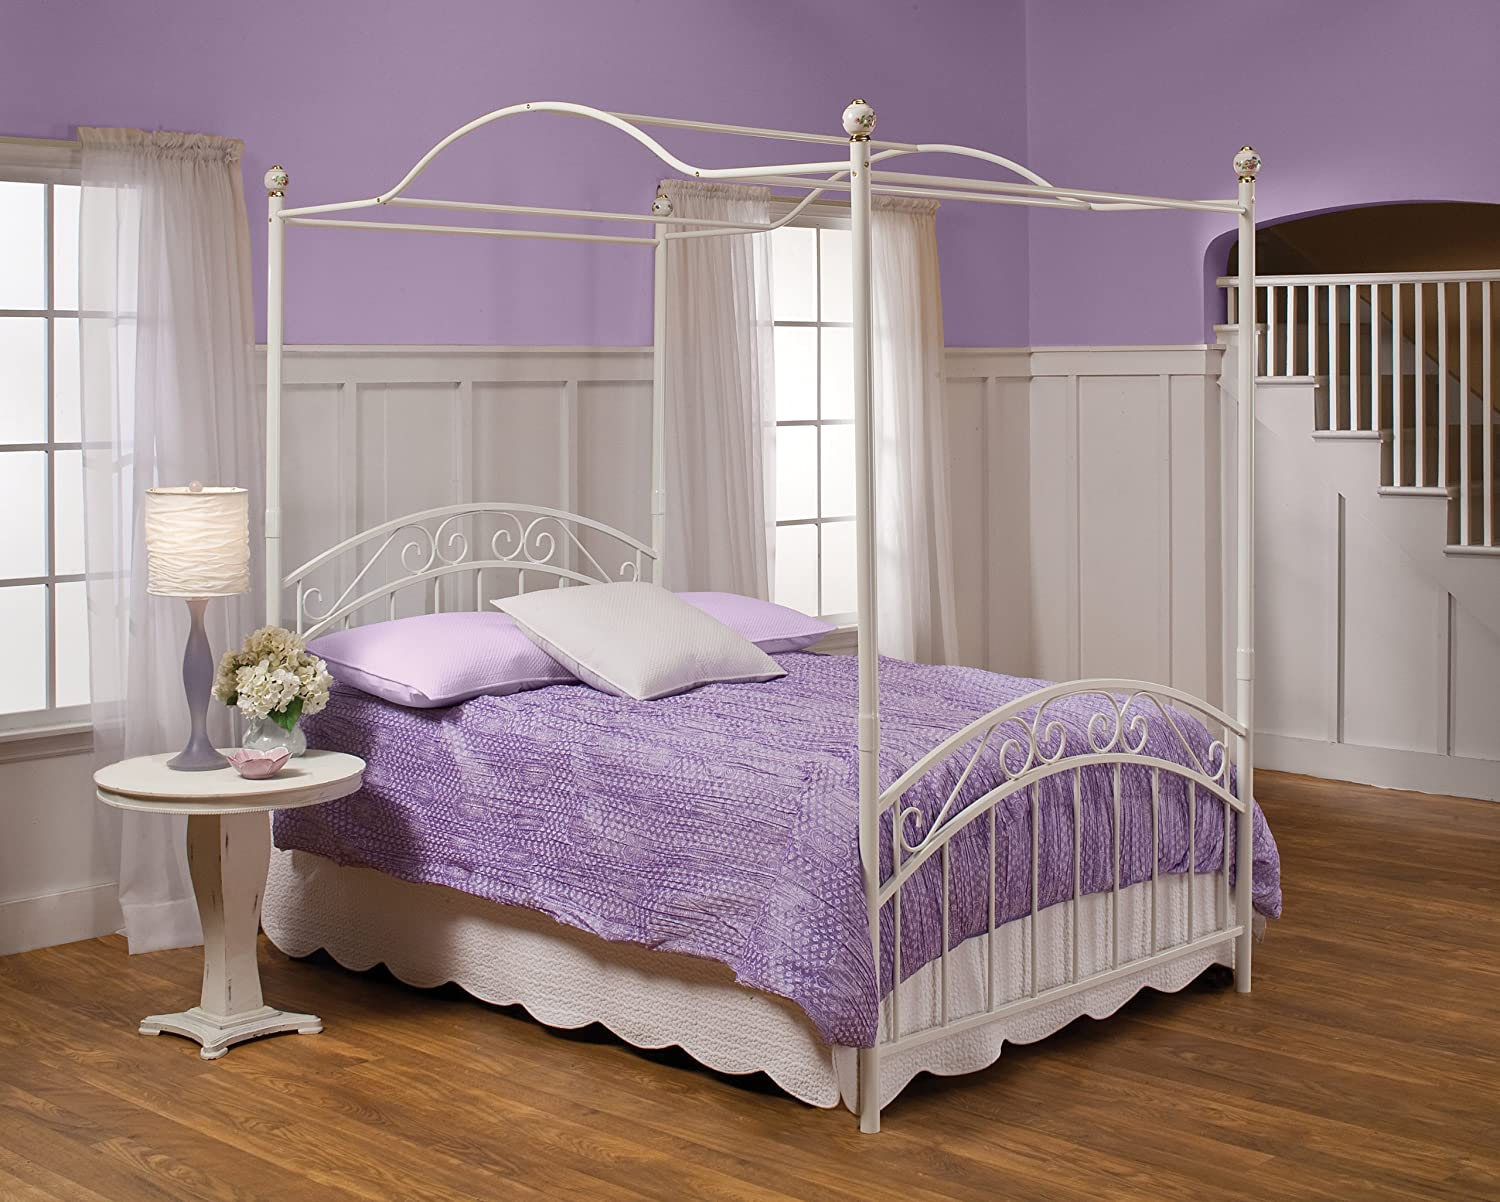 Amazon.com Hillsdale Furniture 11180BTWPR Emily Bed Set with Canopy and Rails Twin White Kitchen u0026 Dining & Amazon.com: Hillsdale Furniture 11180BTWPR Emily Bed Set with ...